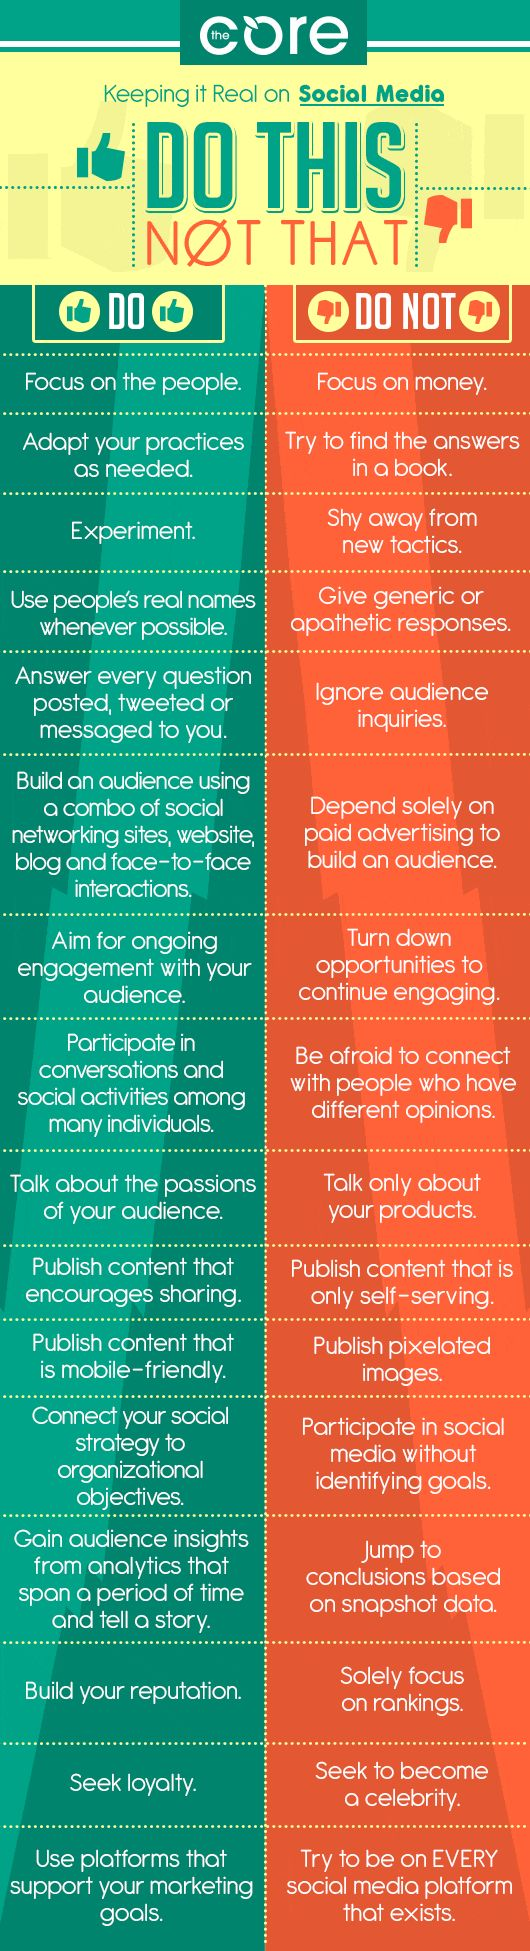 Keeping It Real On Social Media - Do This, Not That #infographic